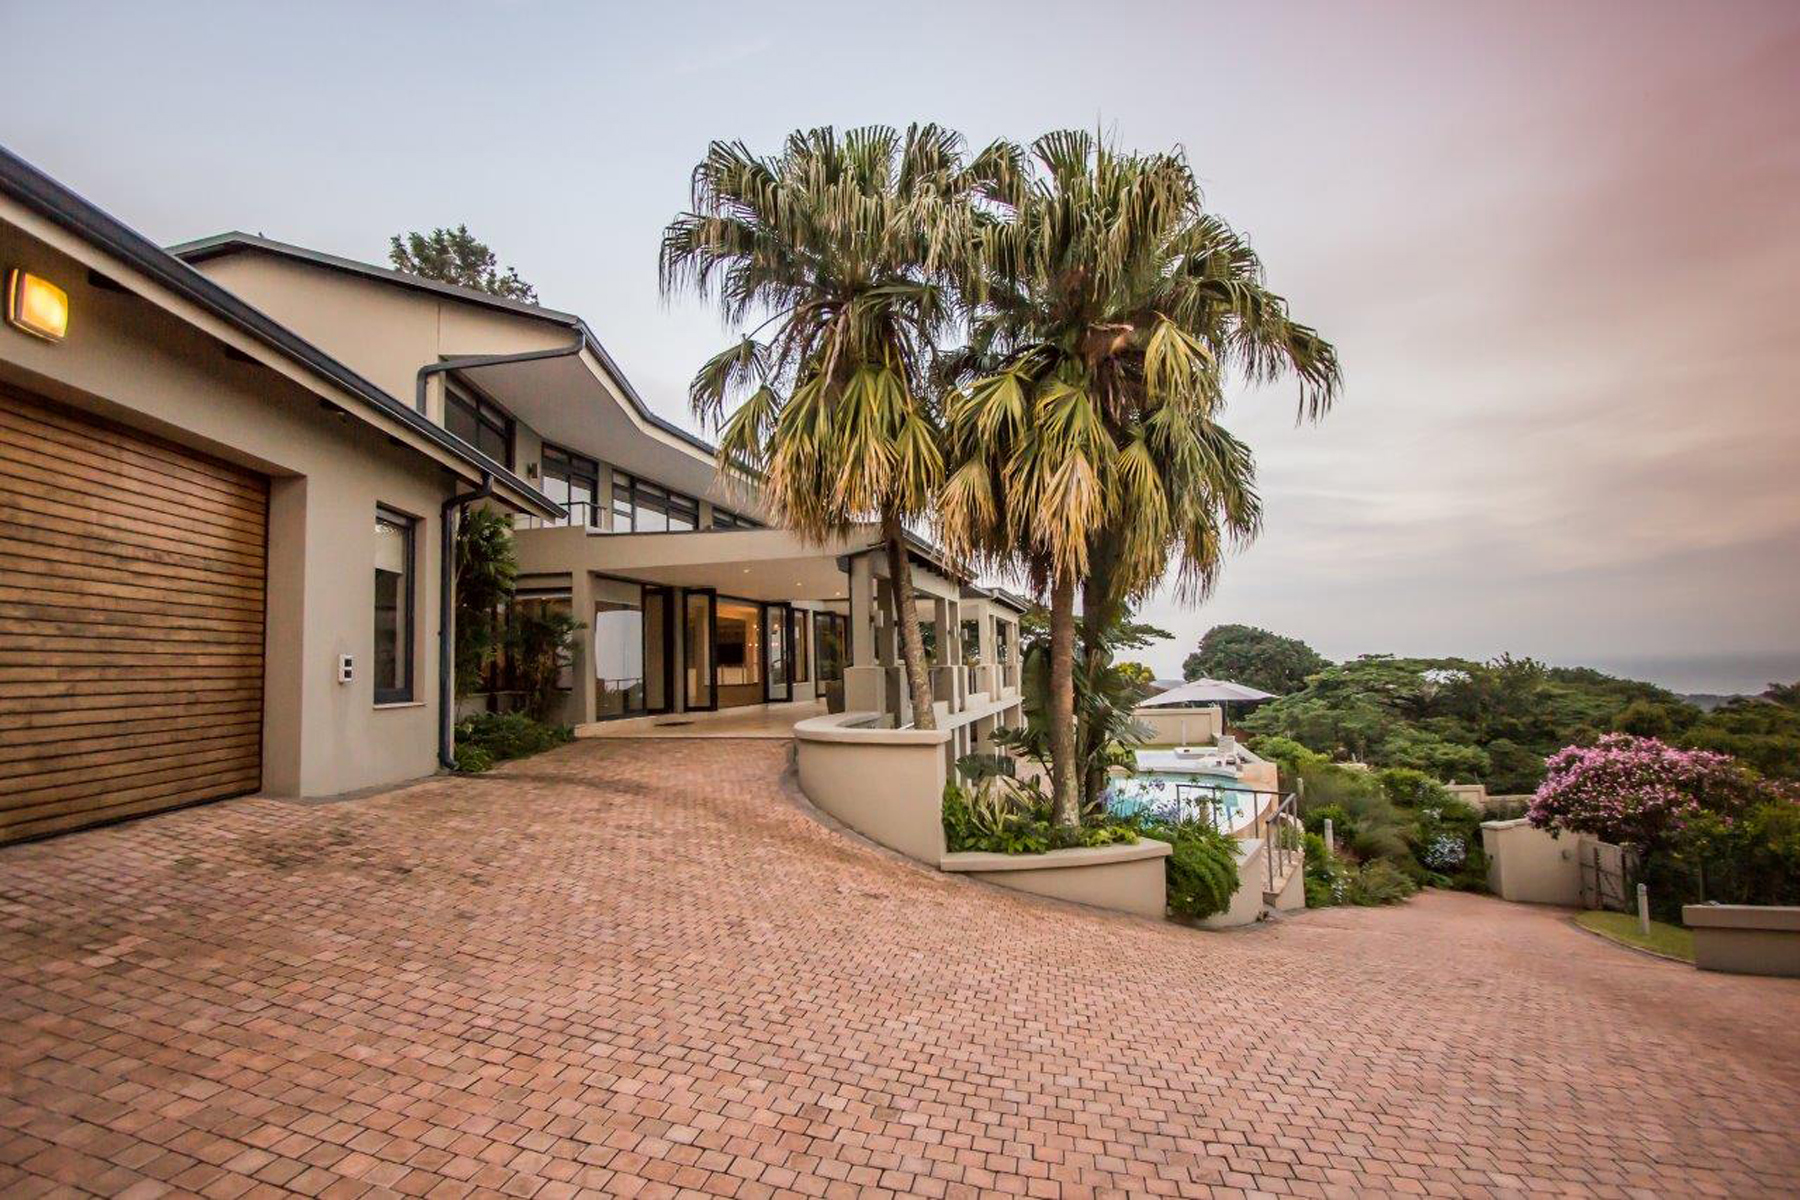 Single Family Home for Sale at Mtunzini Other Kwazulu-Natal, Kwazulu-Natal, 3867 South Africa